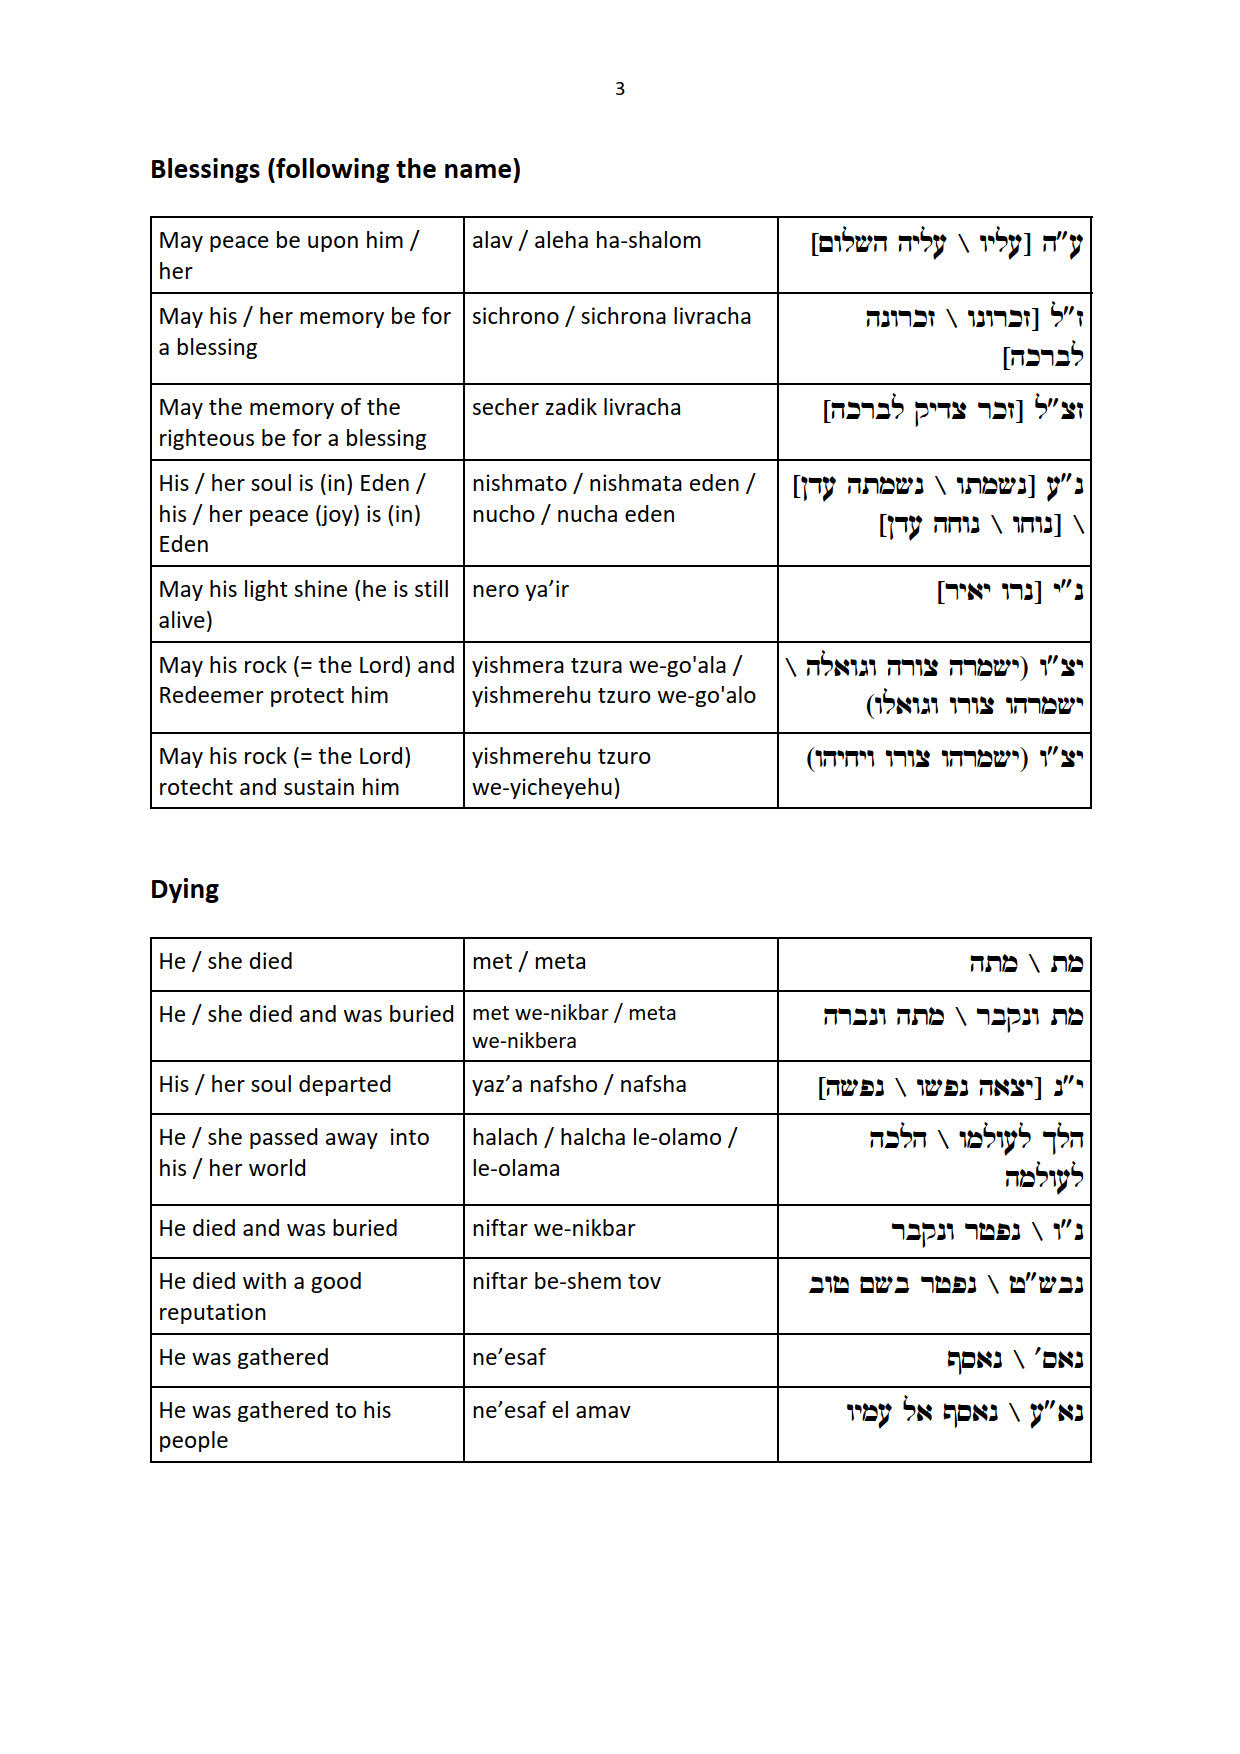 Phrases: Introductory formula, Status, Age, Blessings etc.